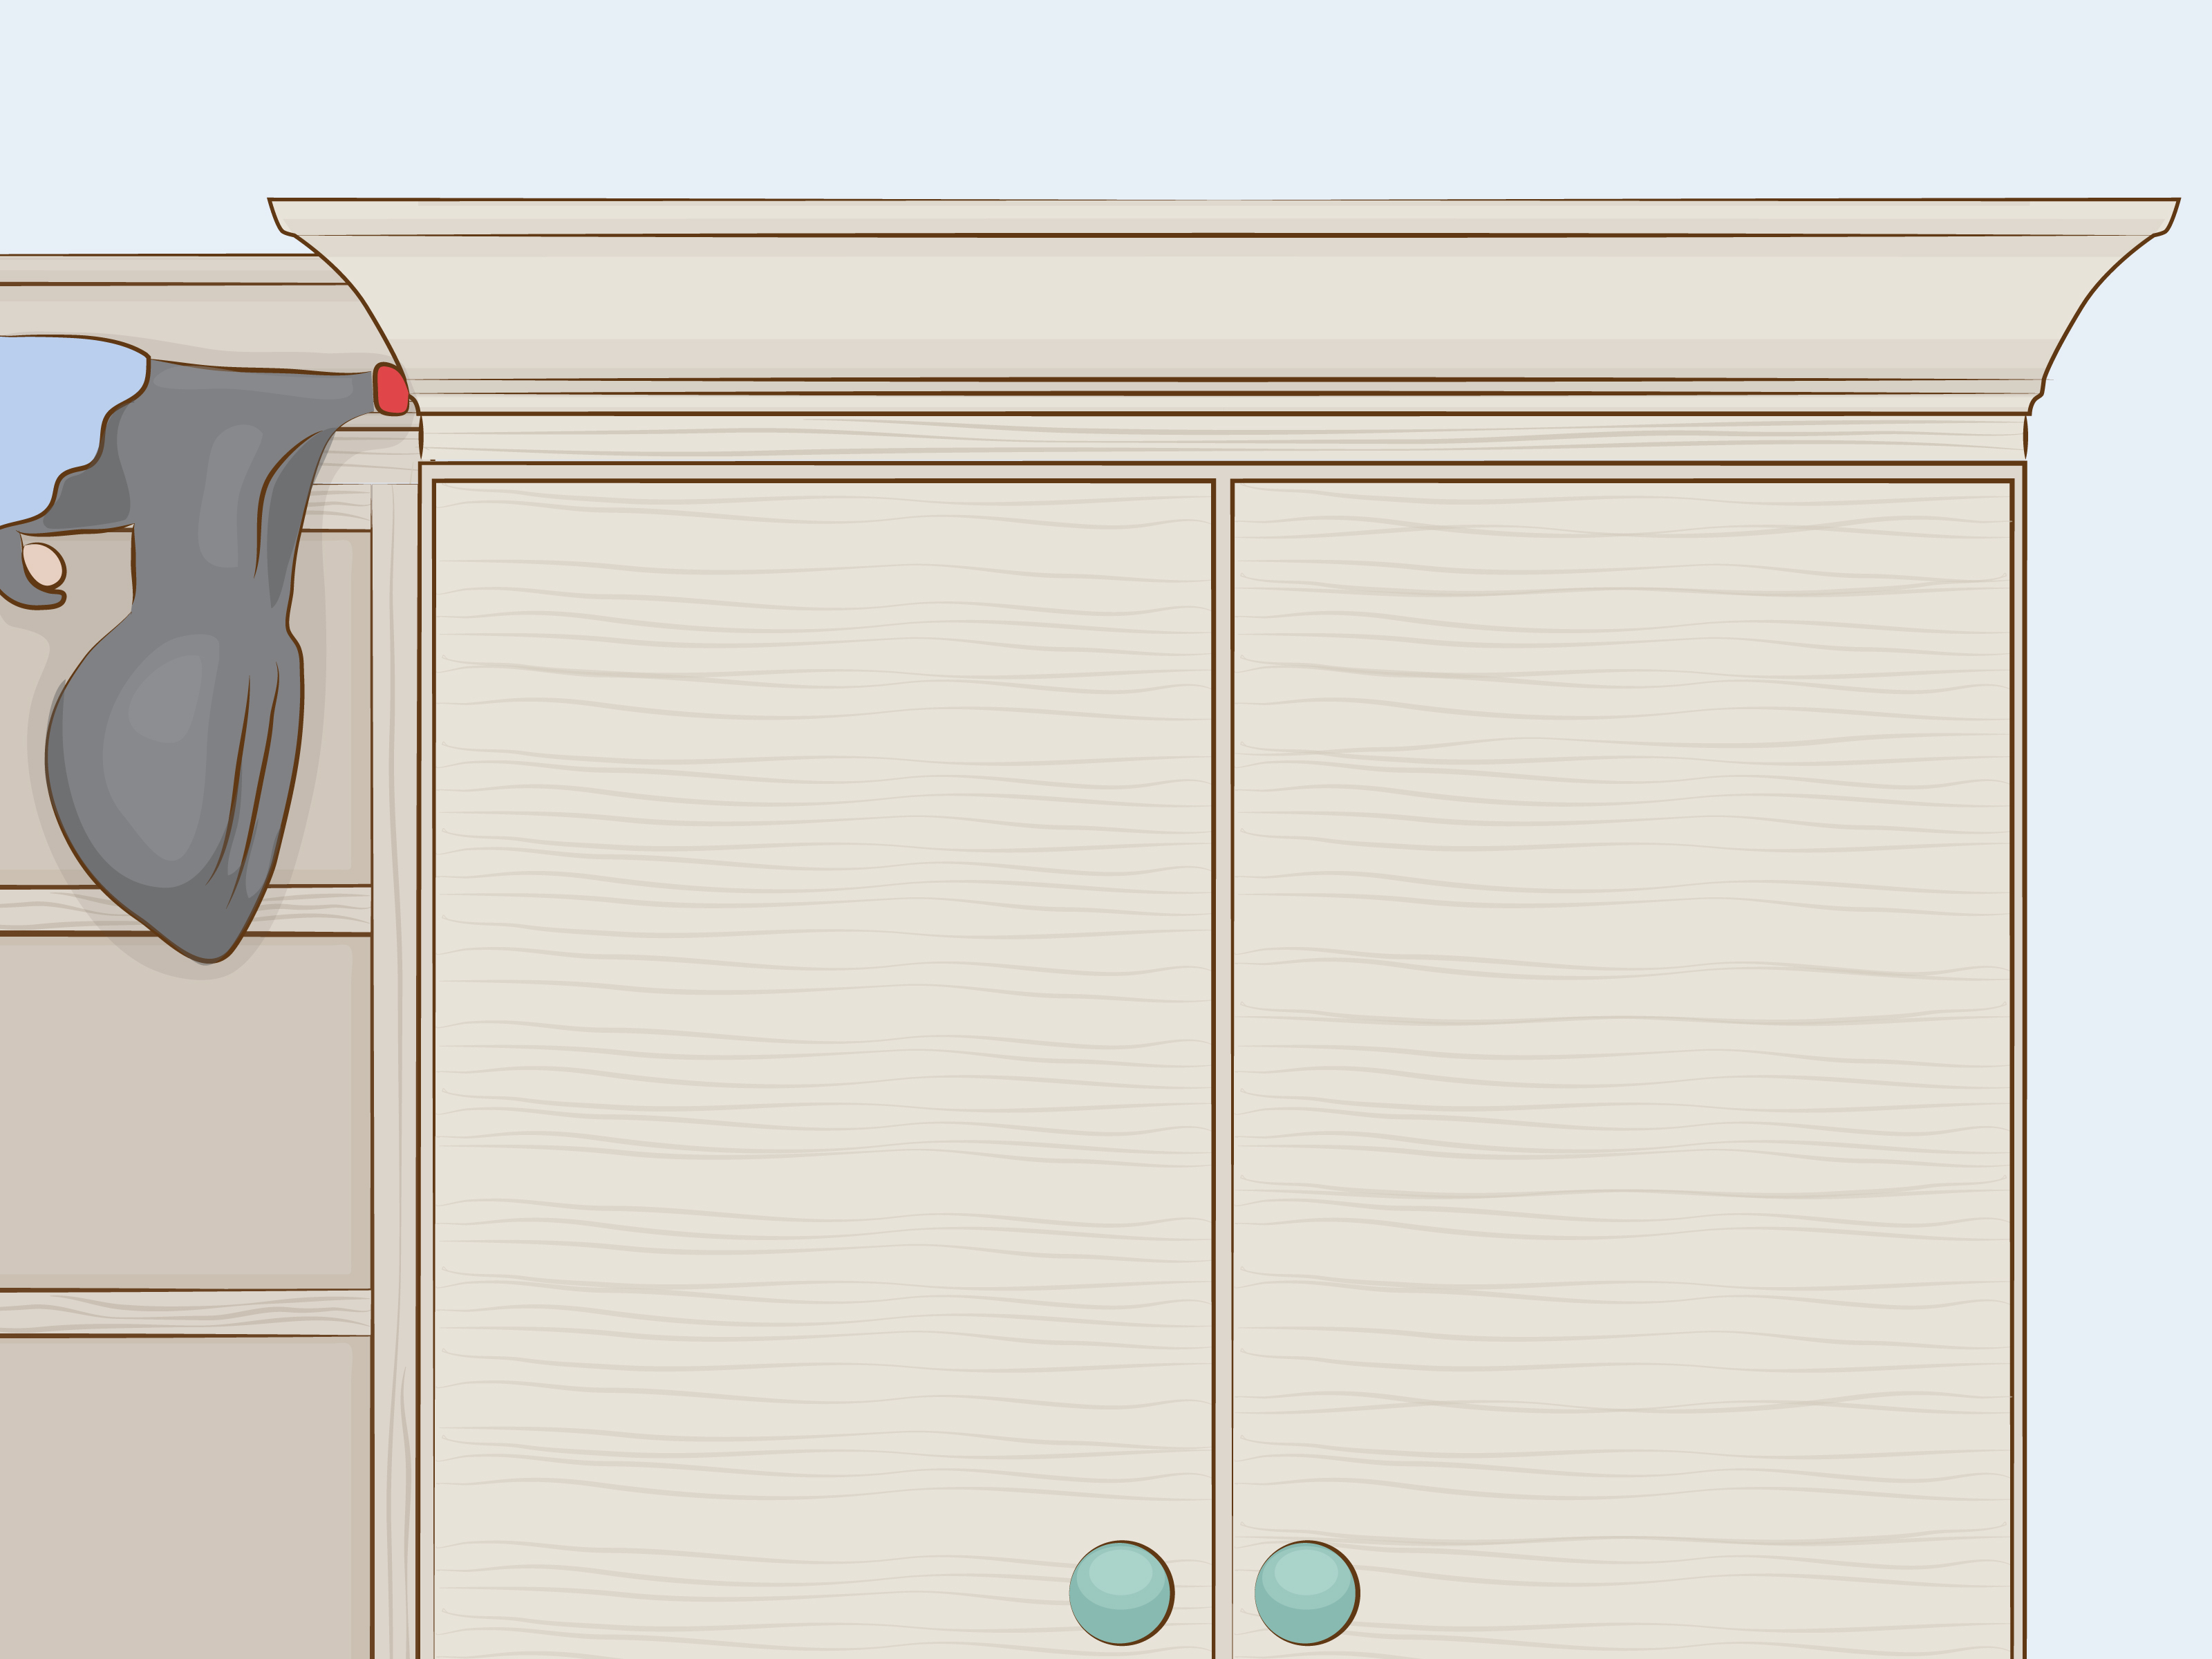 Most Current How To Cut Crown Molding For Cabinets: 12 Steps (With Pictures) Regarding Walnut Finish Crown Moulding Sideboards (Gallery 7 of 20)